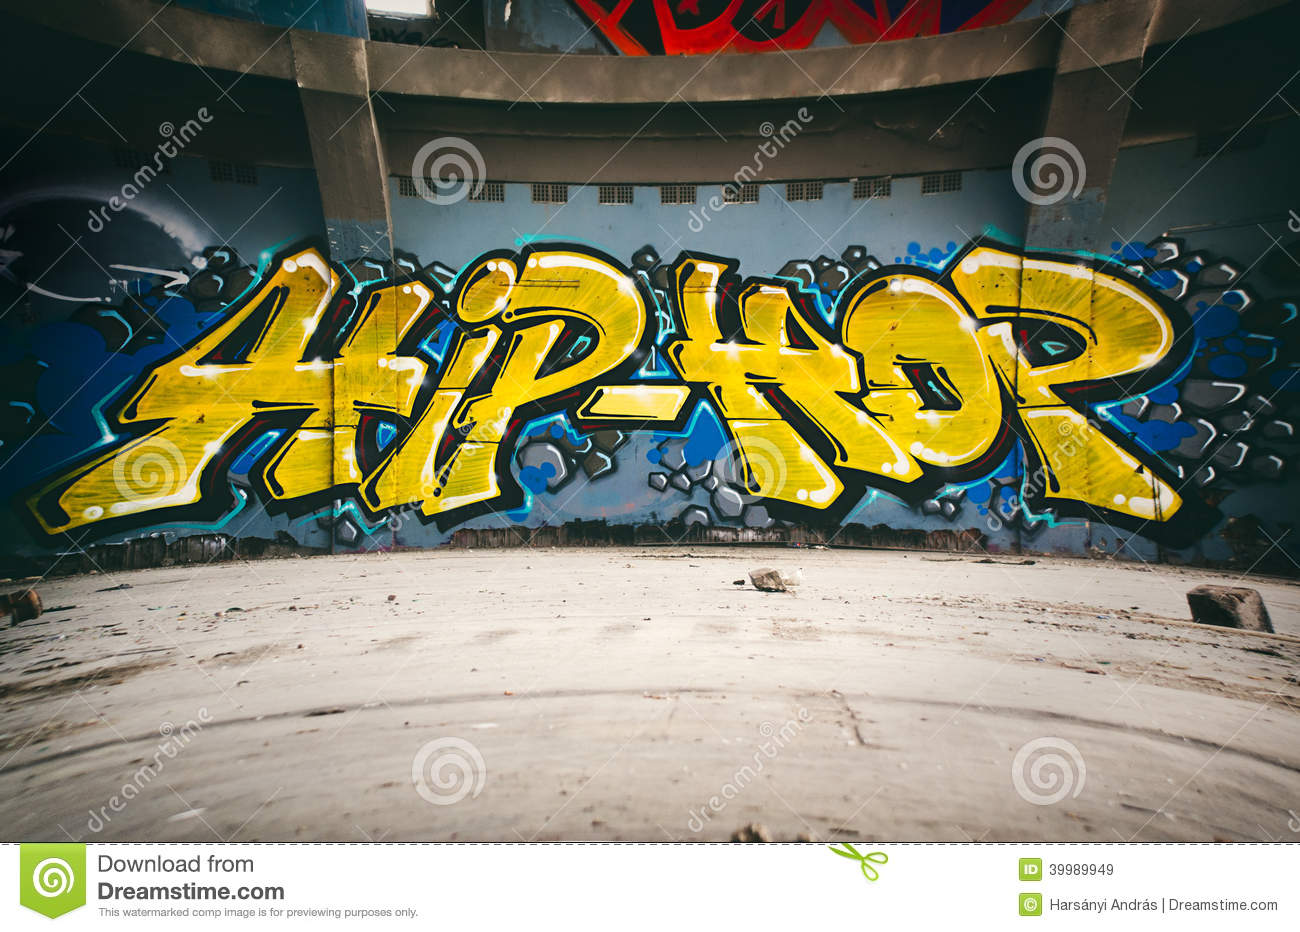 Luxury Hip Hop Wall Art | About My Blog